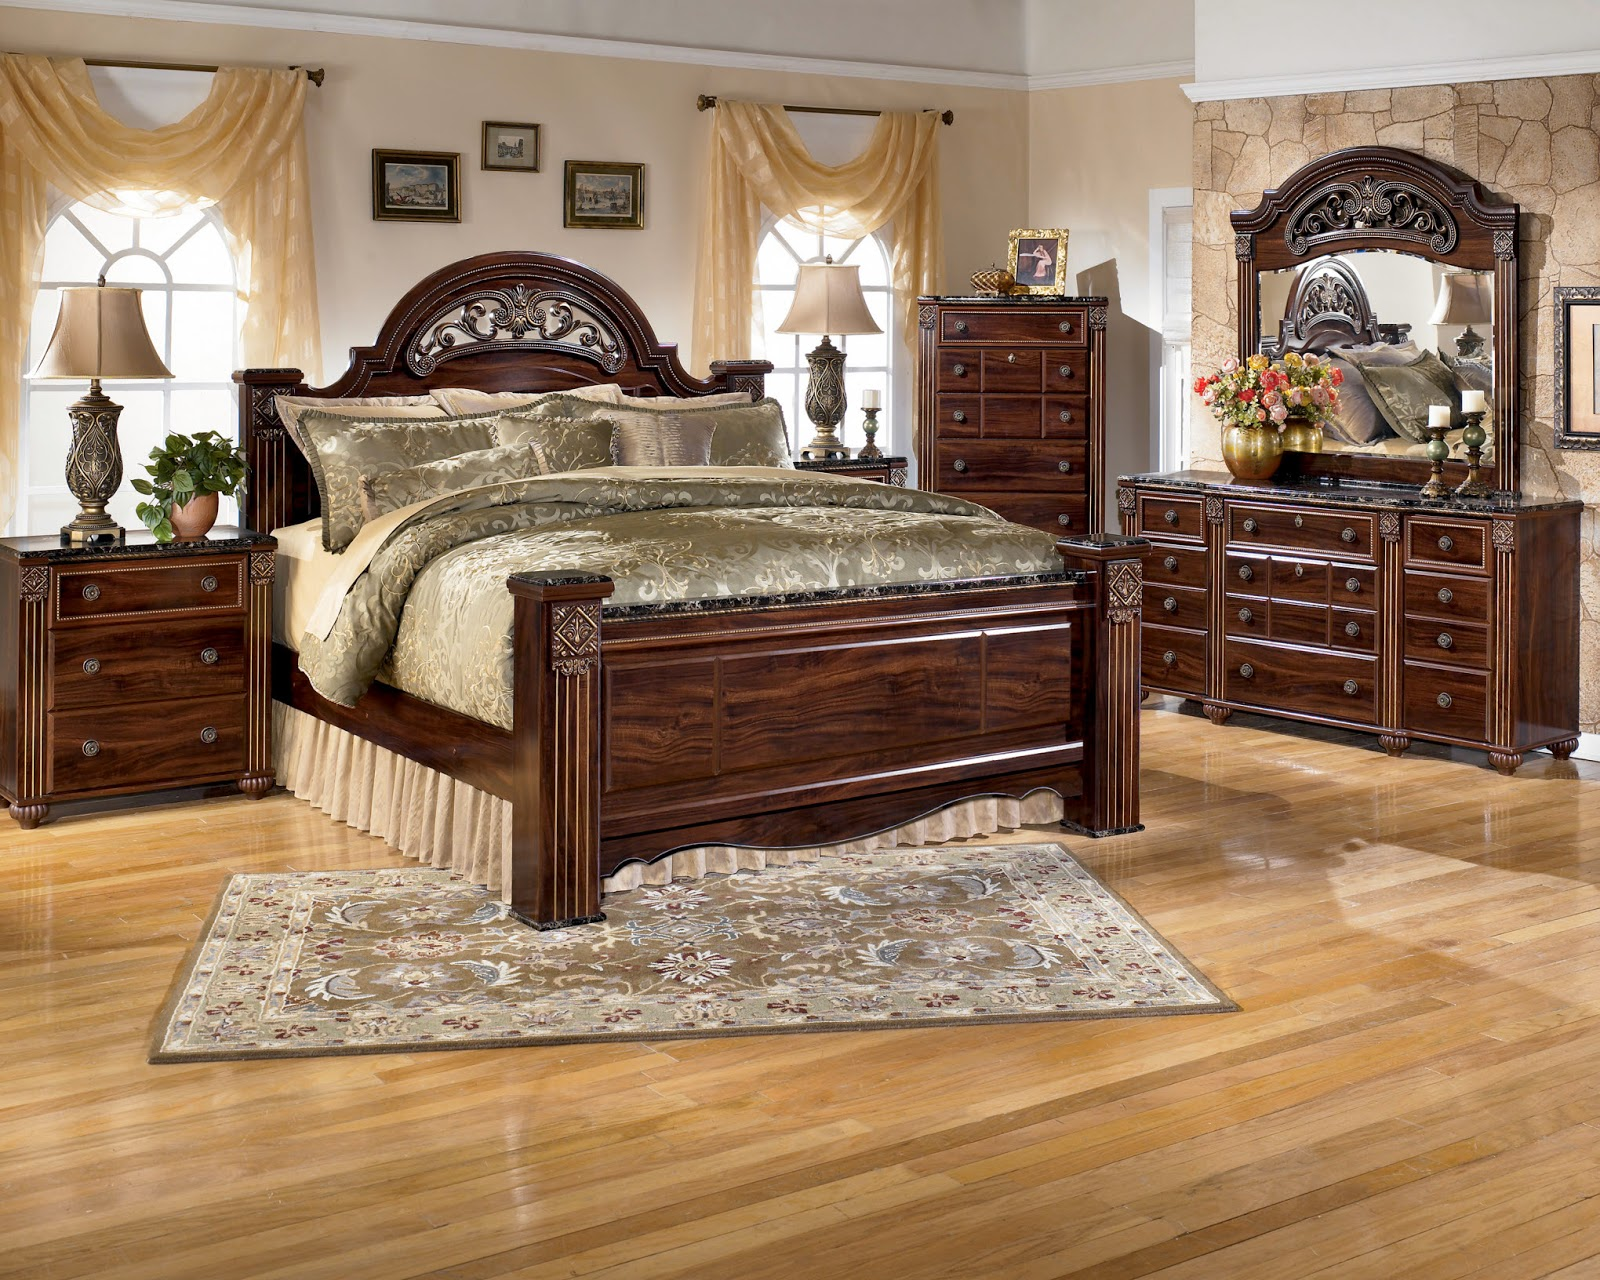 ashley furniture bedroom sets on sale popular interior house ideas